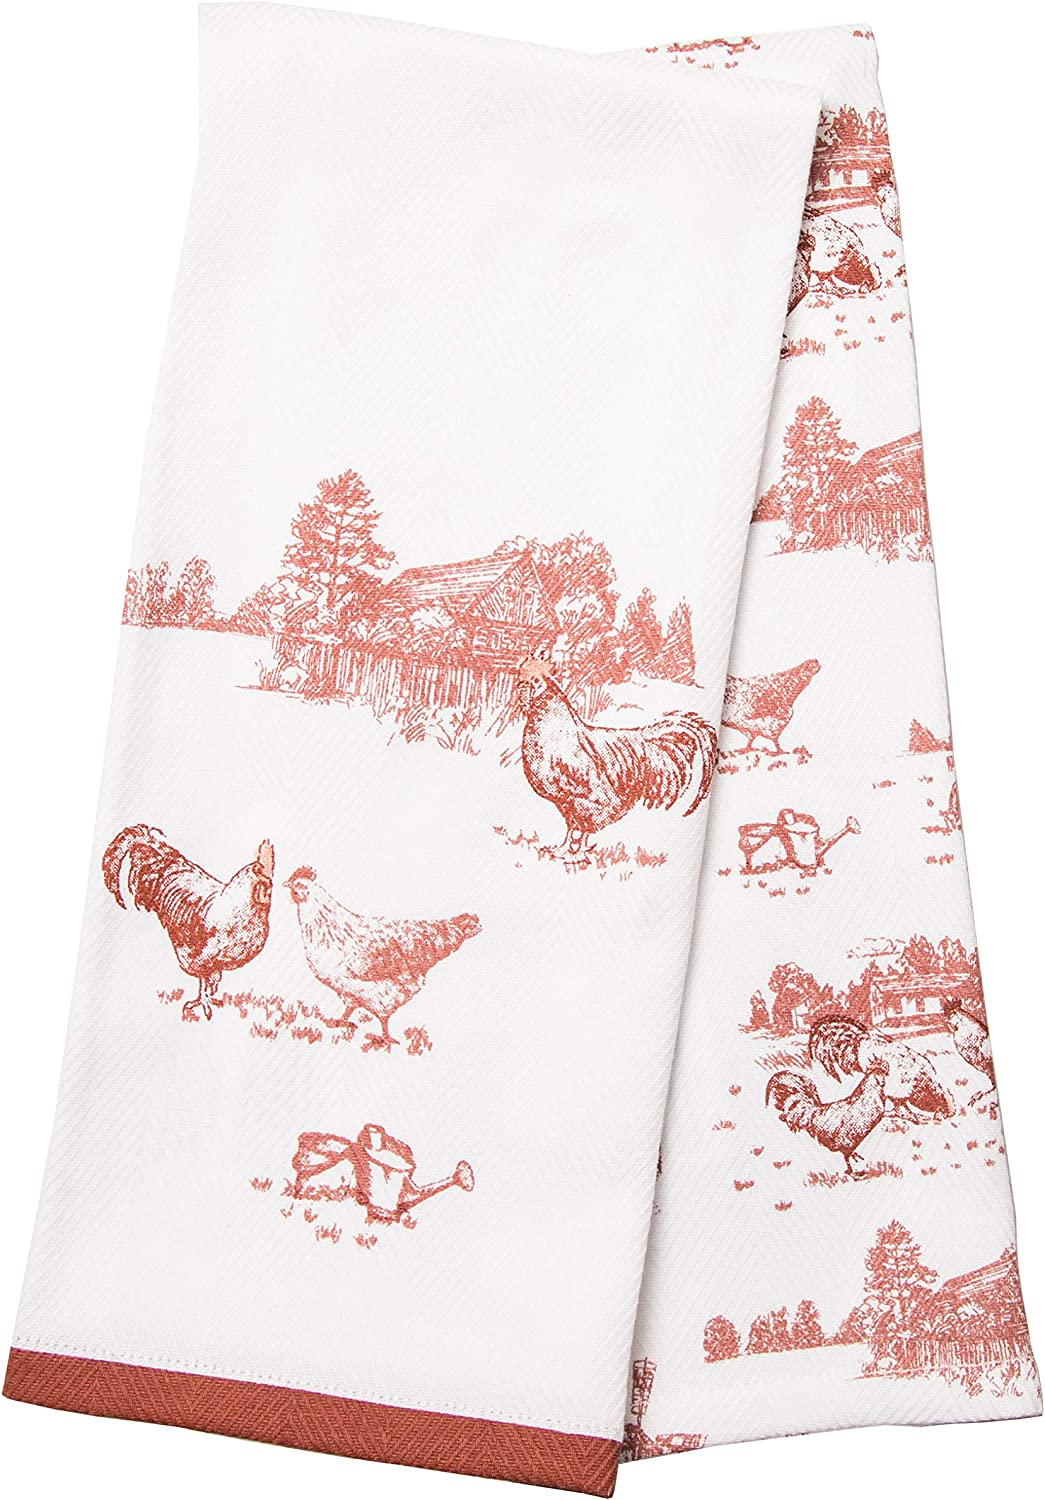 Better Homes & Gardens Red Rooster Kitchen Towels, Set of 2